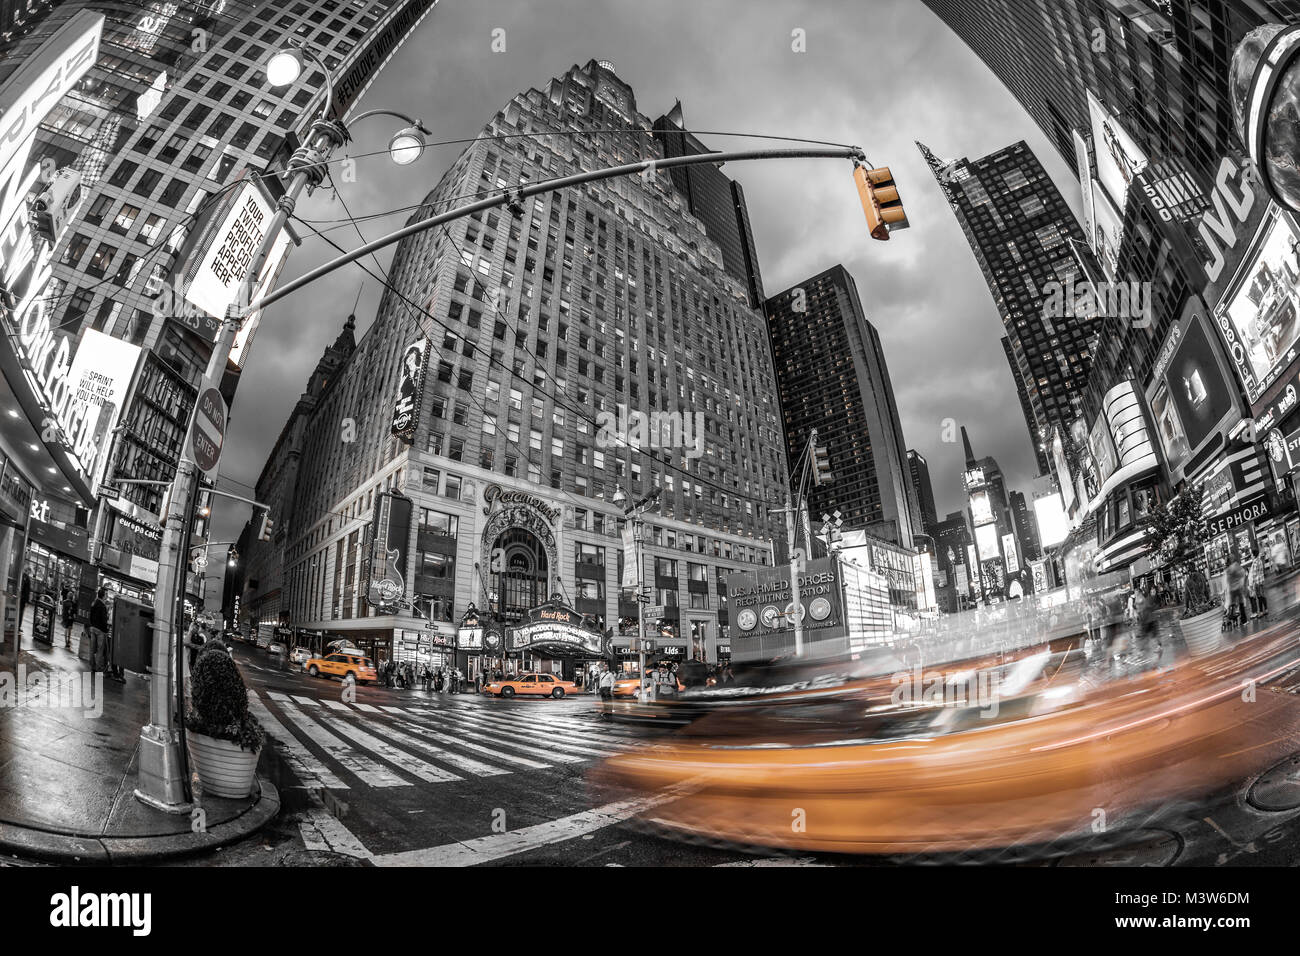 Paramount building, Hard Rock Cafe, blurred taxi, Times Square, Broadway 1501, New York City, USA - Stock Image